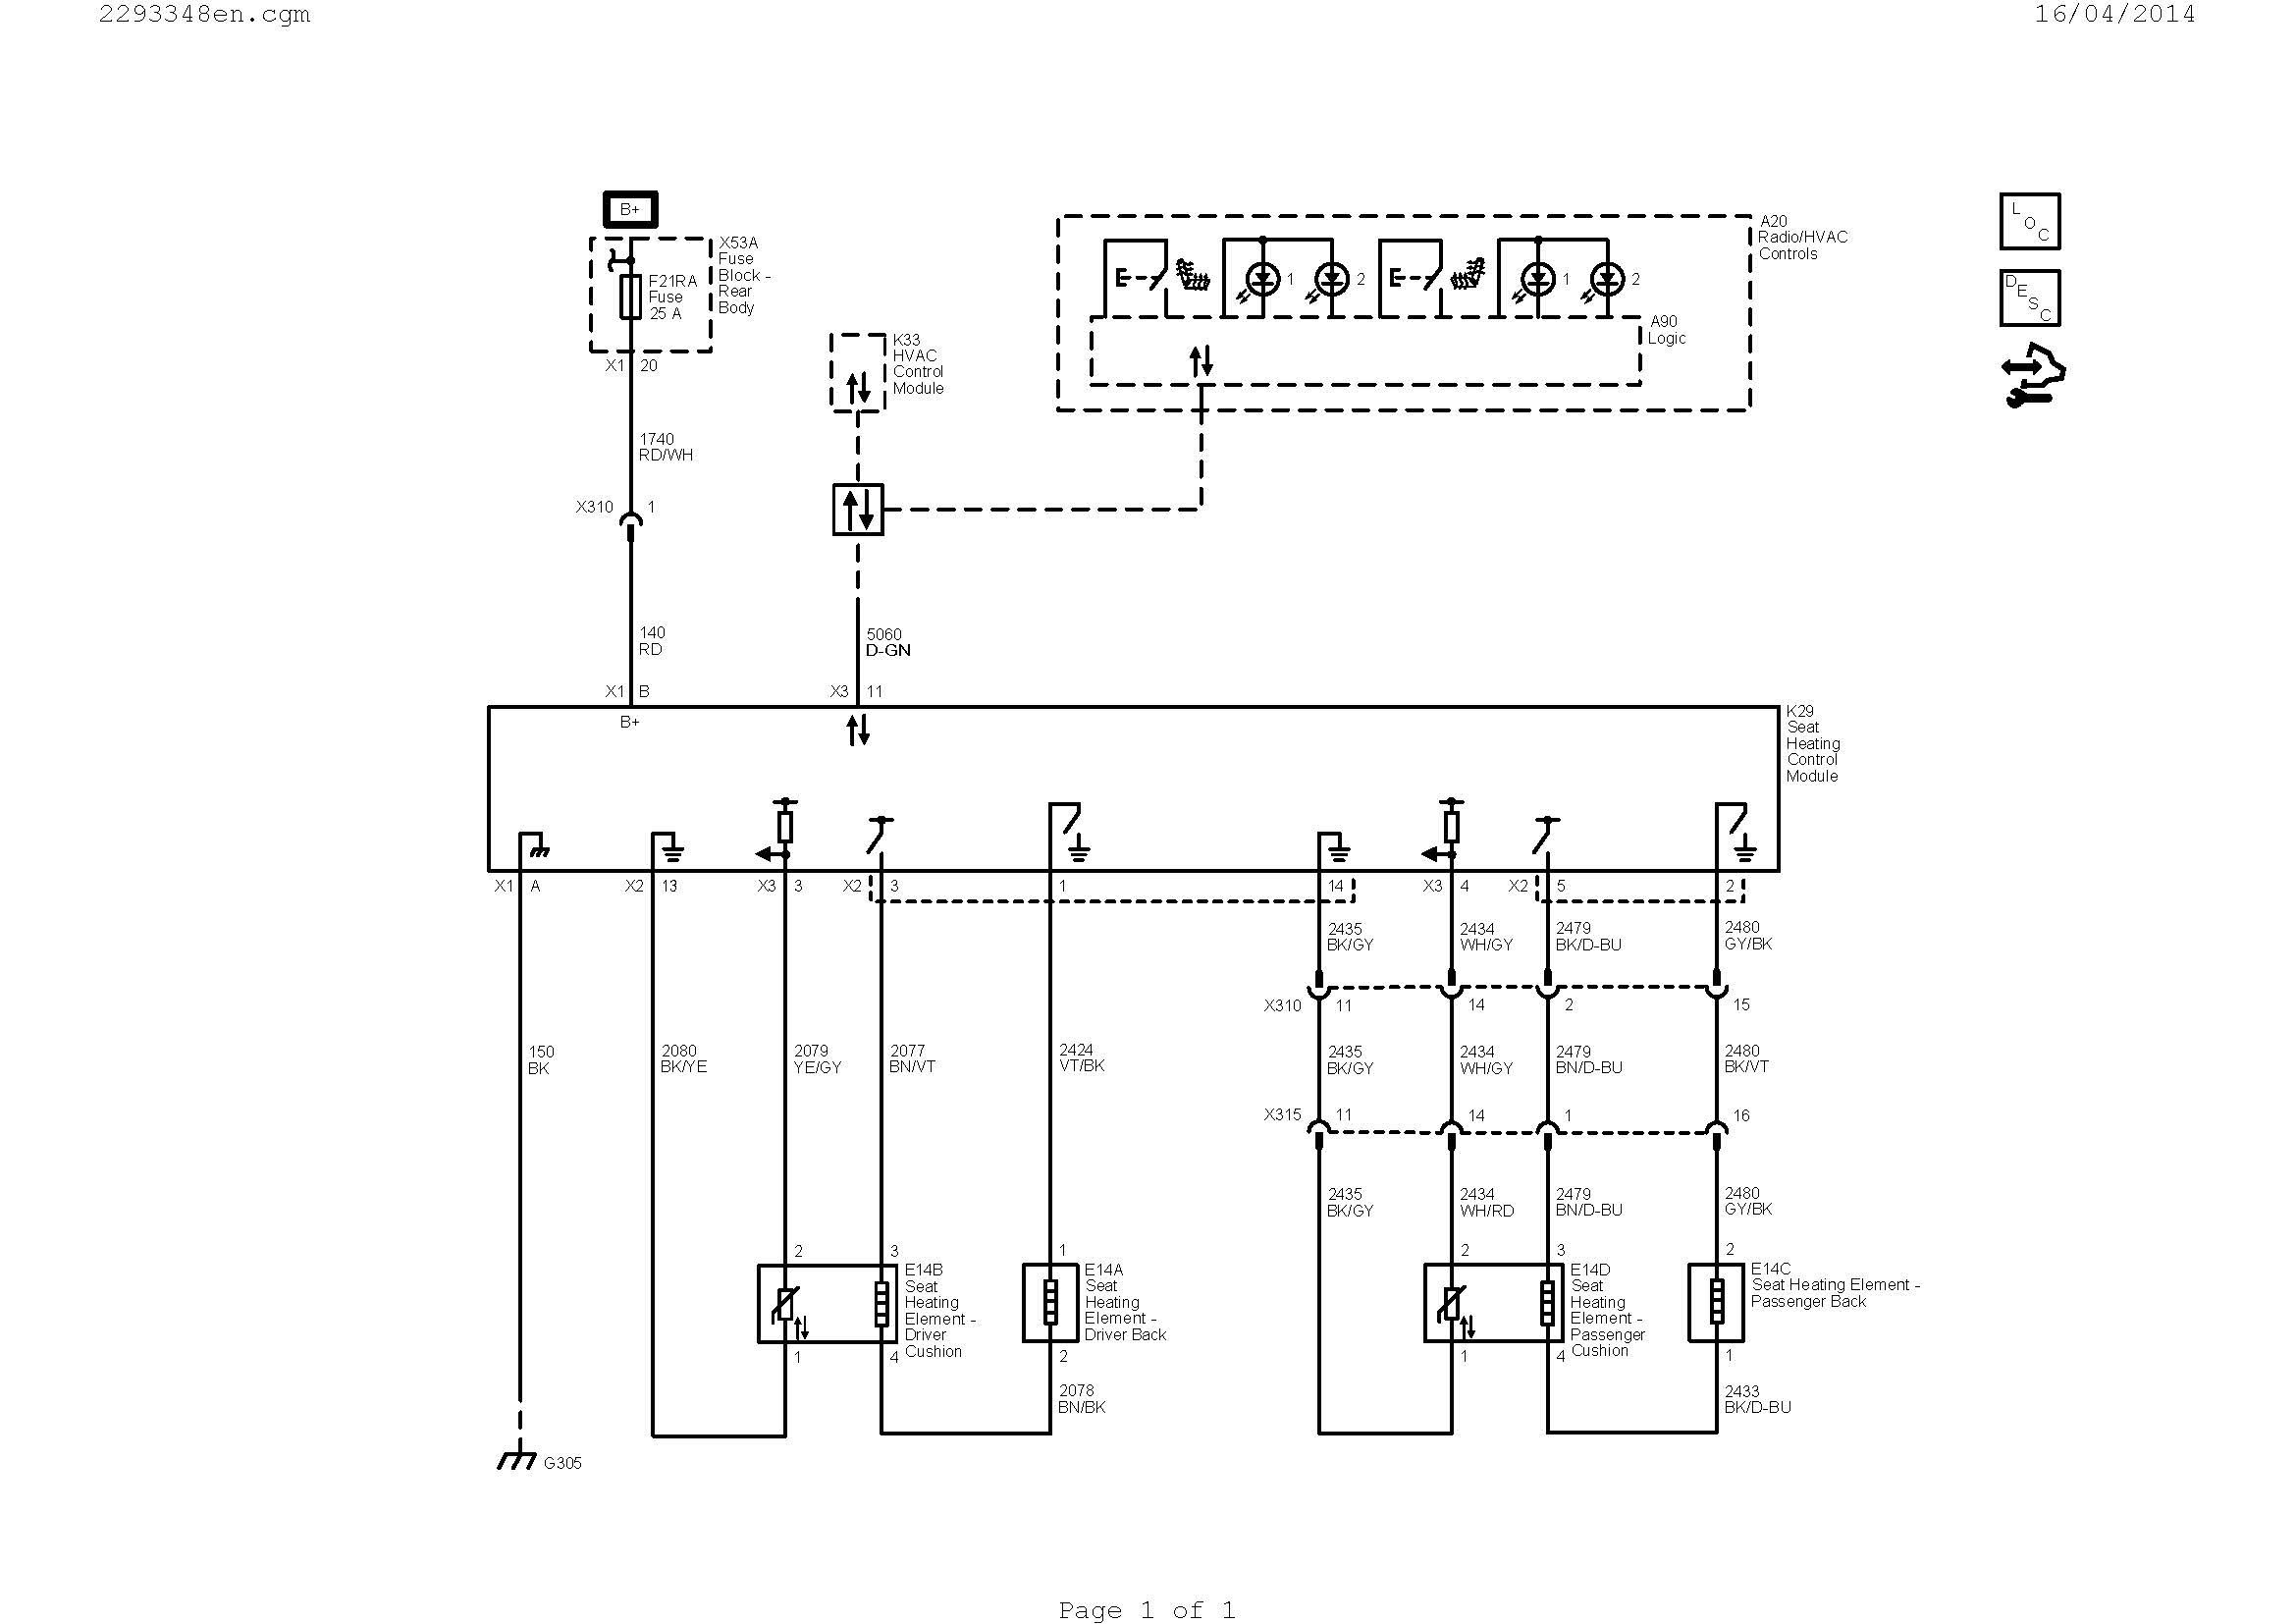 Home Theater Wiring Diagram Software Free On 2014 Detail Name 20s